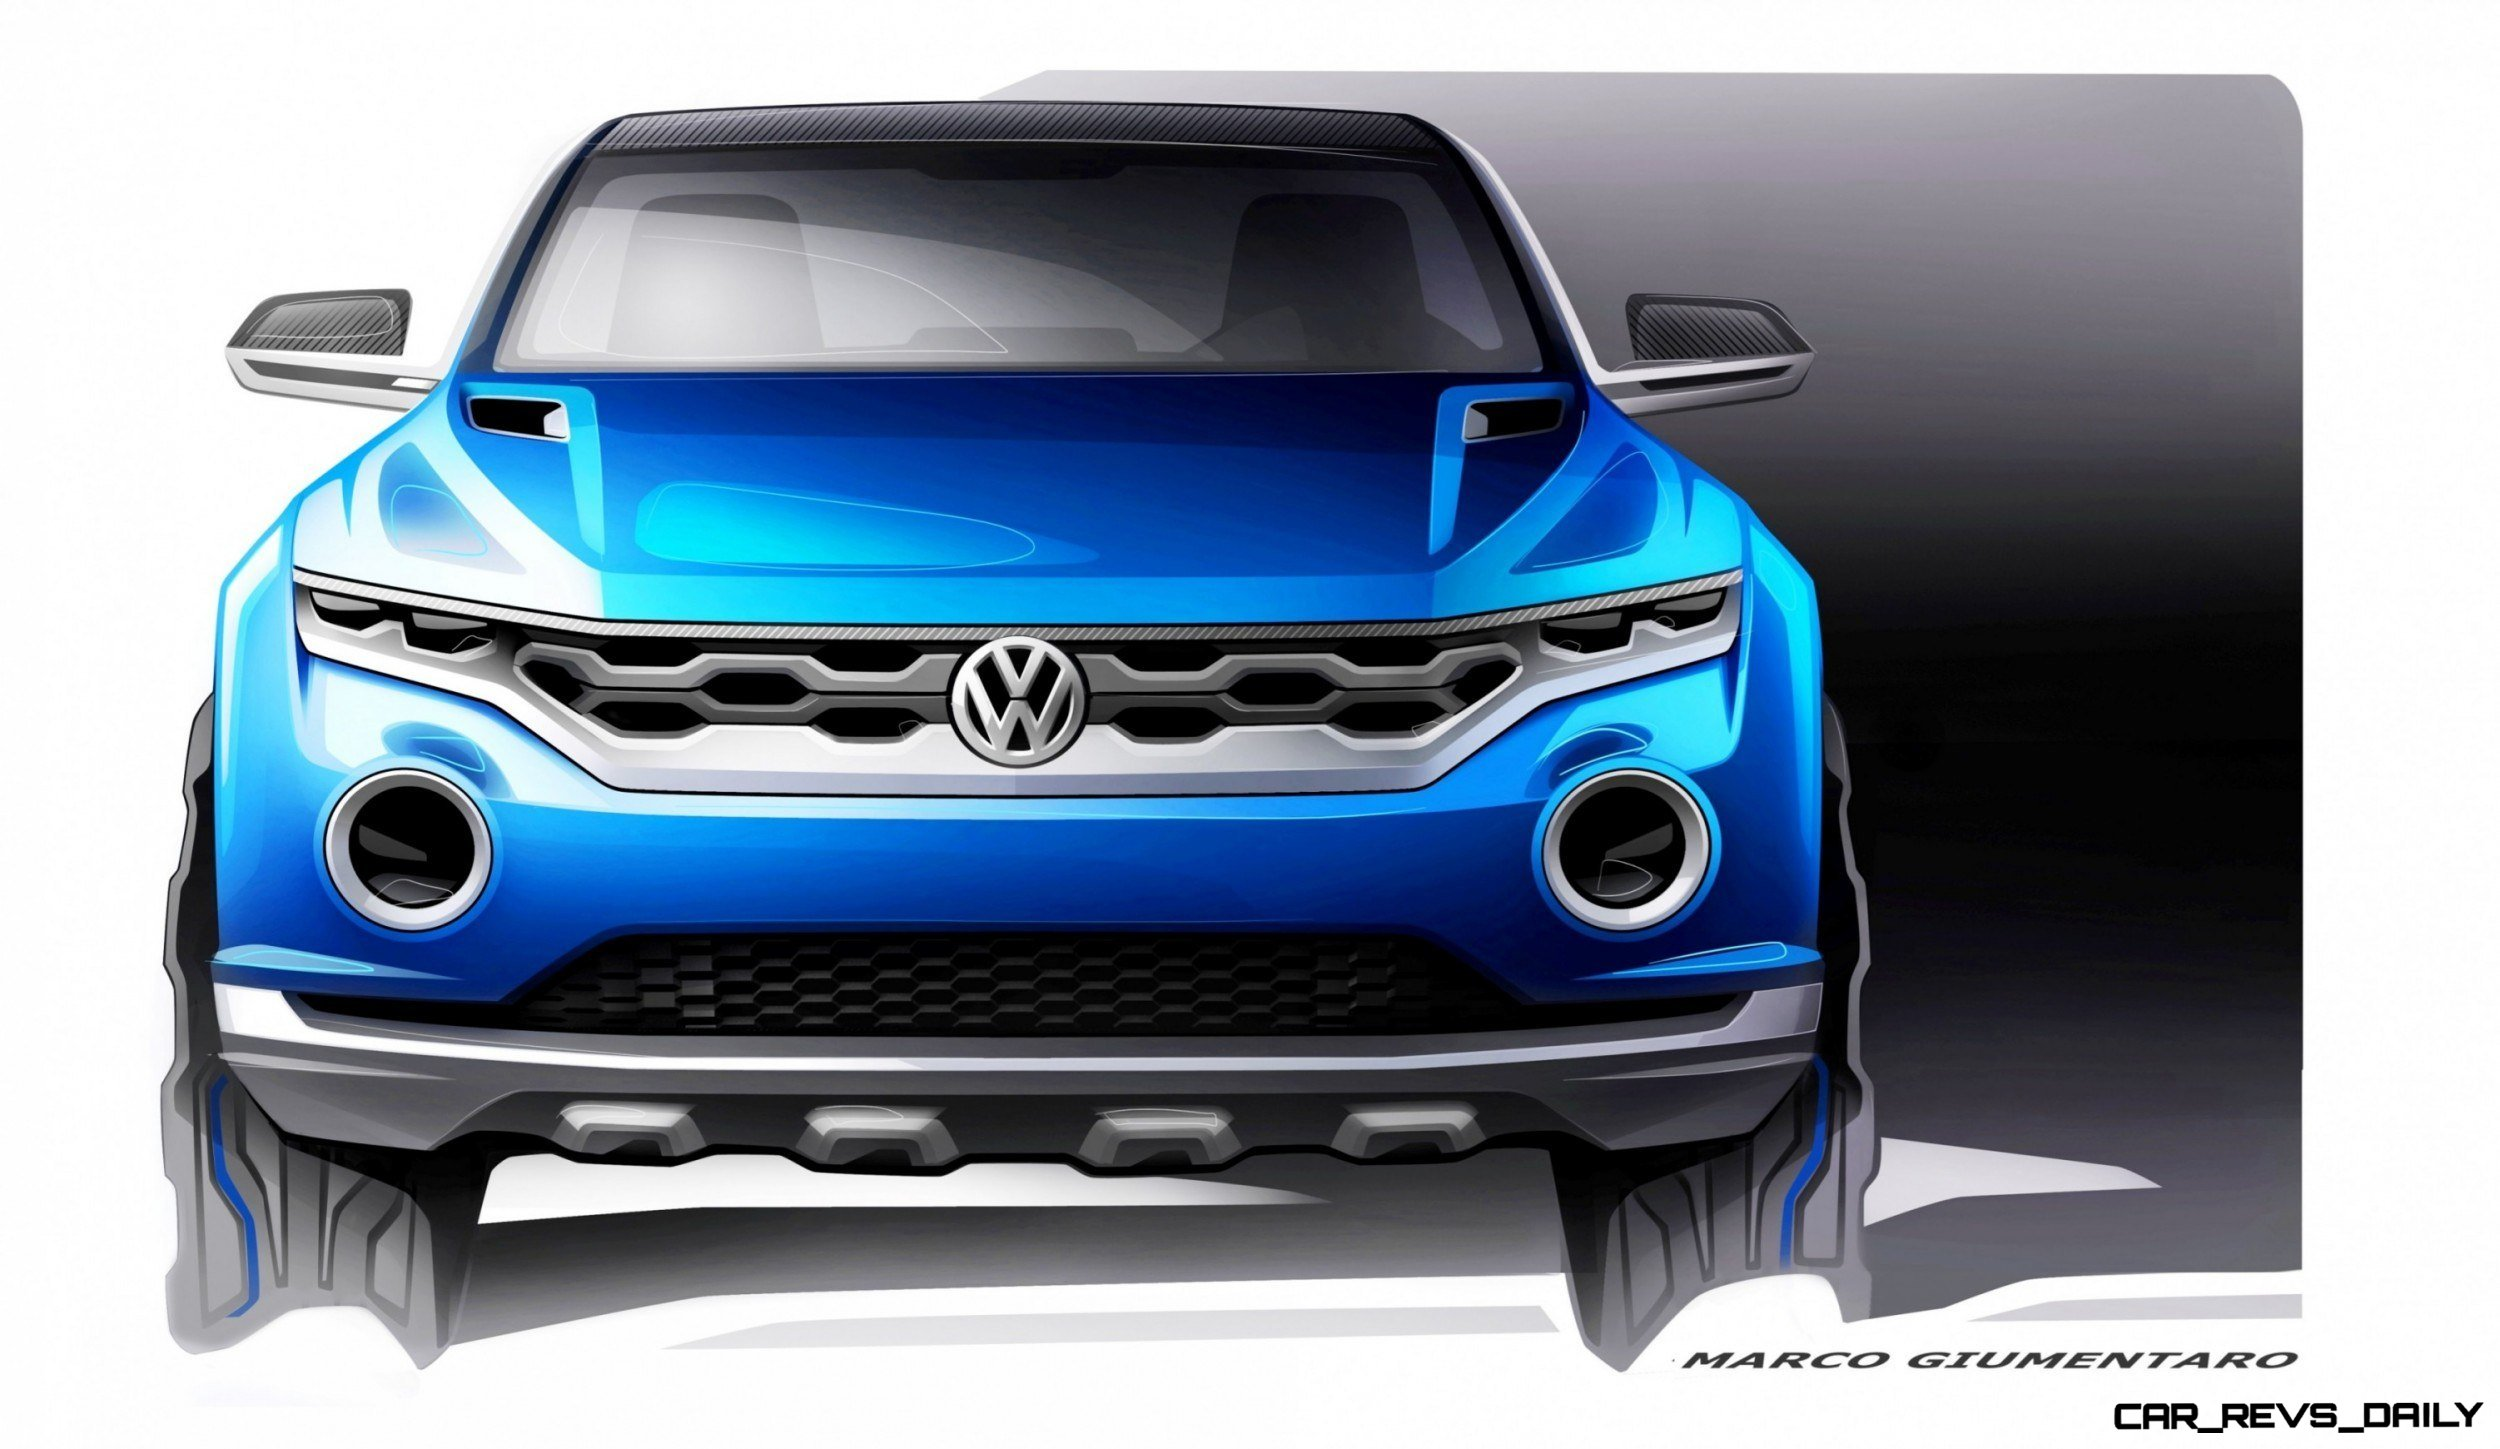 VW T-ROC -- A High-Tech Jeep Wrangler for the Digital Age -- Hot Style -- Real 4WD -- Removable Roof Panels VW T-ROC -- A High-Tech Jeep Wrangler for the Digital Age -- Hot Style -- Real 4WD -- Removable Roof Panels VW T-ROC -- A High-Tech Jeep Wrangler for the Digital Age -- Hot Style -- Real 4WD -- Removable Roof Panels VW T-ROC -- A High-Tech Jeep Wrangler for the Digital Age -- Hot Style -- Real 4WD -- Removable Roof Panels VW T-ROC -- A High-Tech Jeep Wrangler for the Digital Age -- Hot Style -- Real 4WD -- Removable Roof Panels